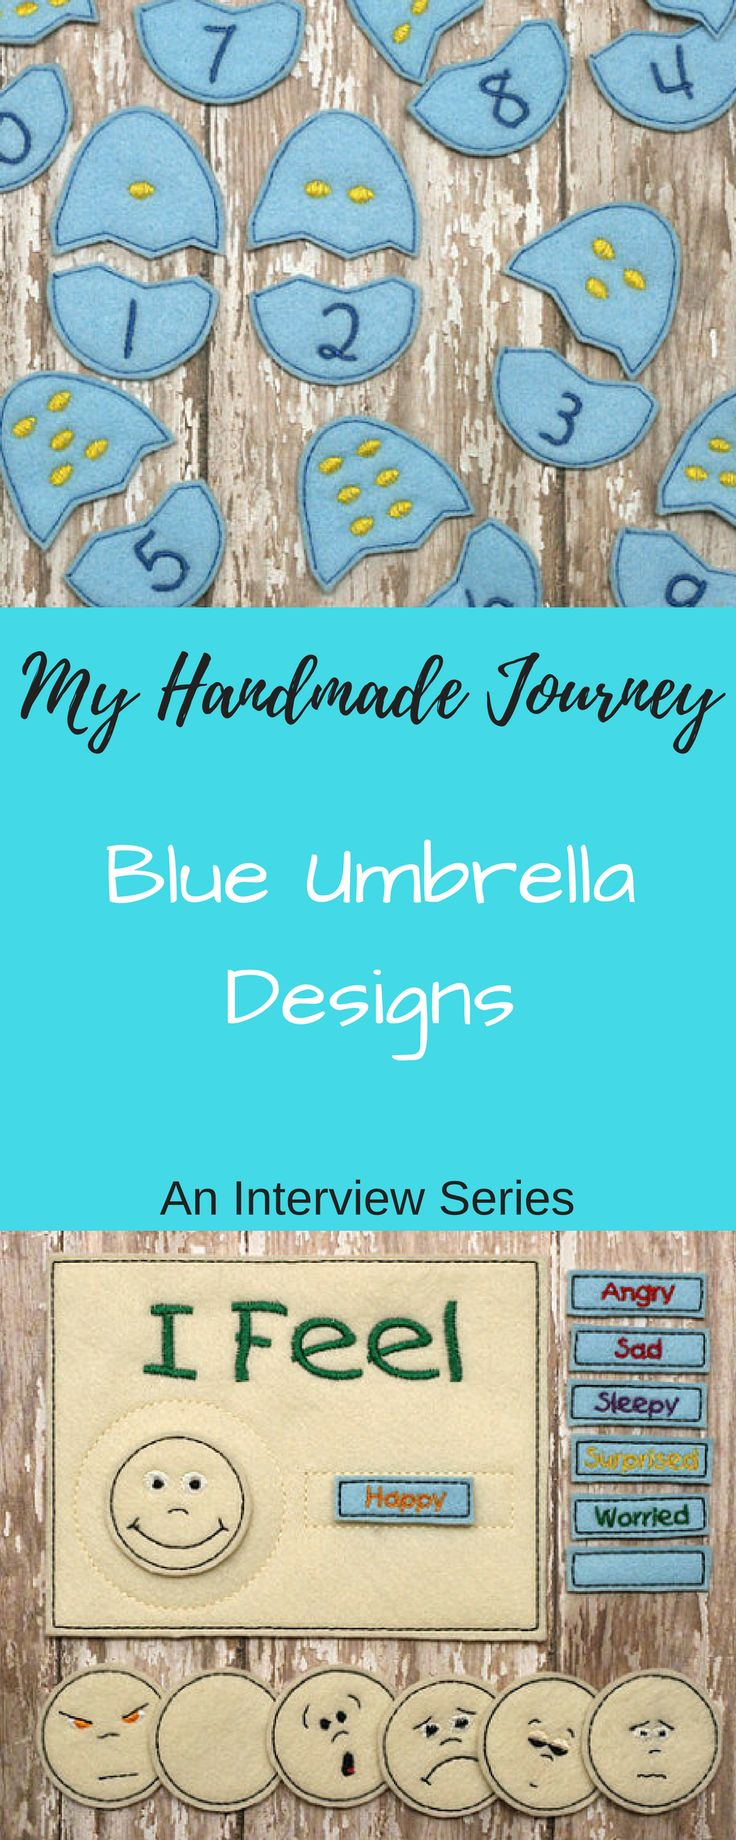 Follow the journey of handmade artisans selling online. Come read our interview with shop owner Amanda from Blue Umbrella Designs #etsy #etsyseller #amazonhandmade #startinganetsyshop #buildingourhappilyeverafter #blog #handmade #happinessishandmade